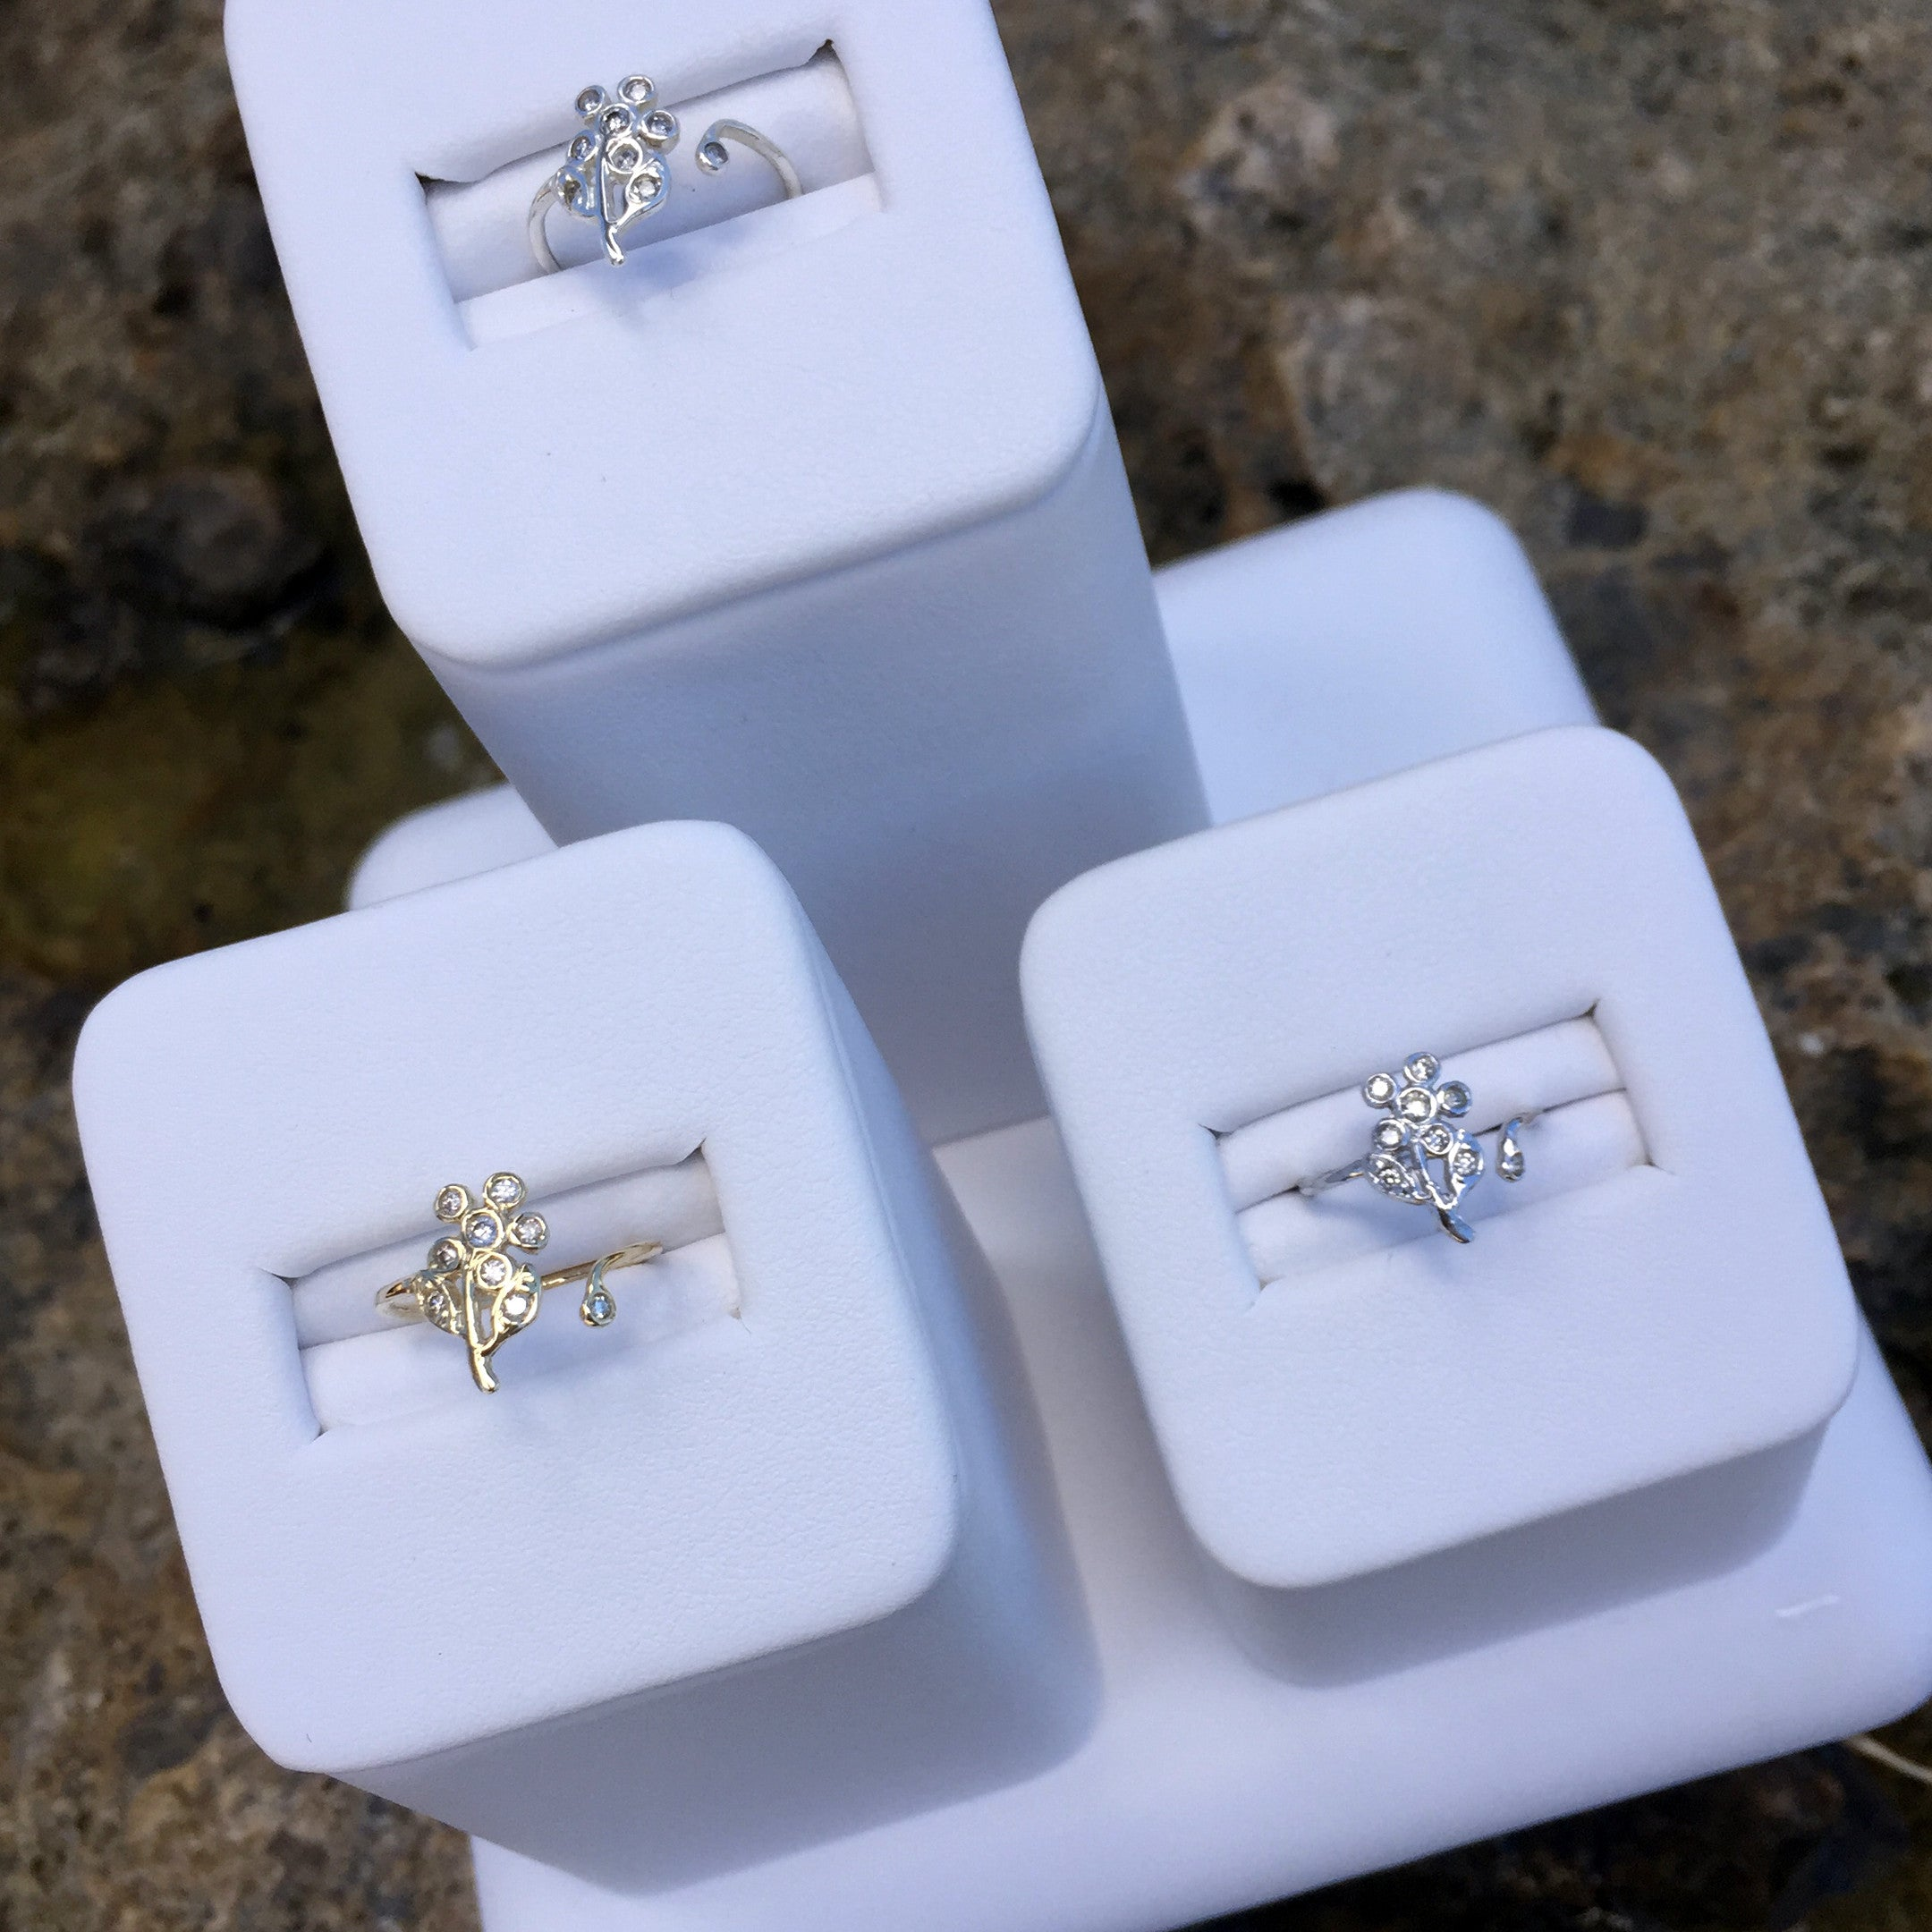 Deal Of the Day: Daisy Diamond Toe Ring